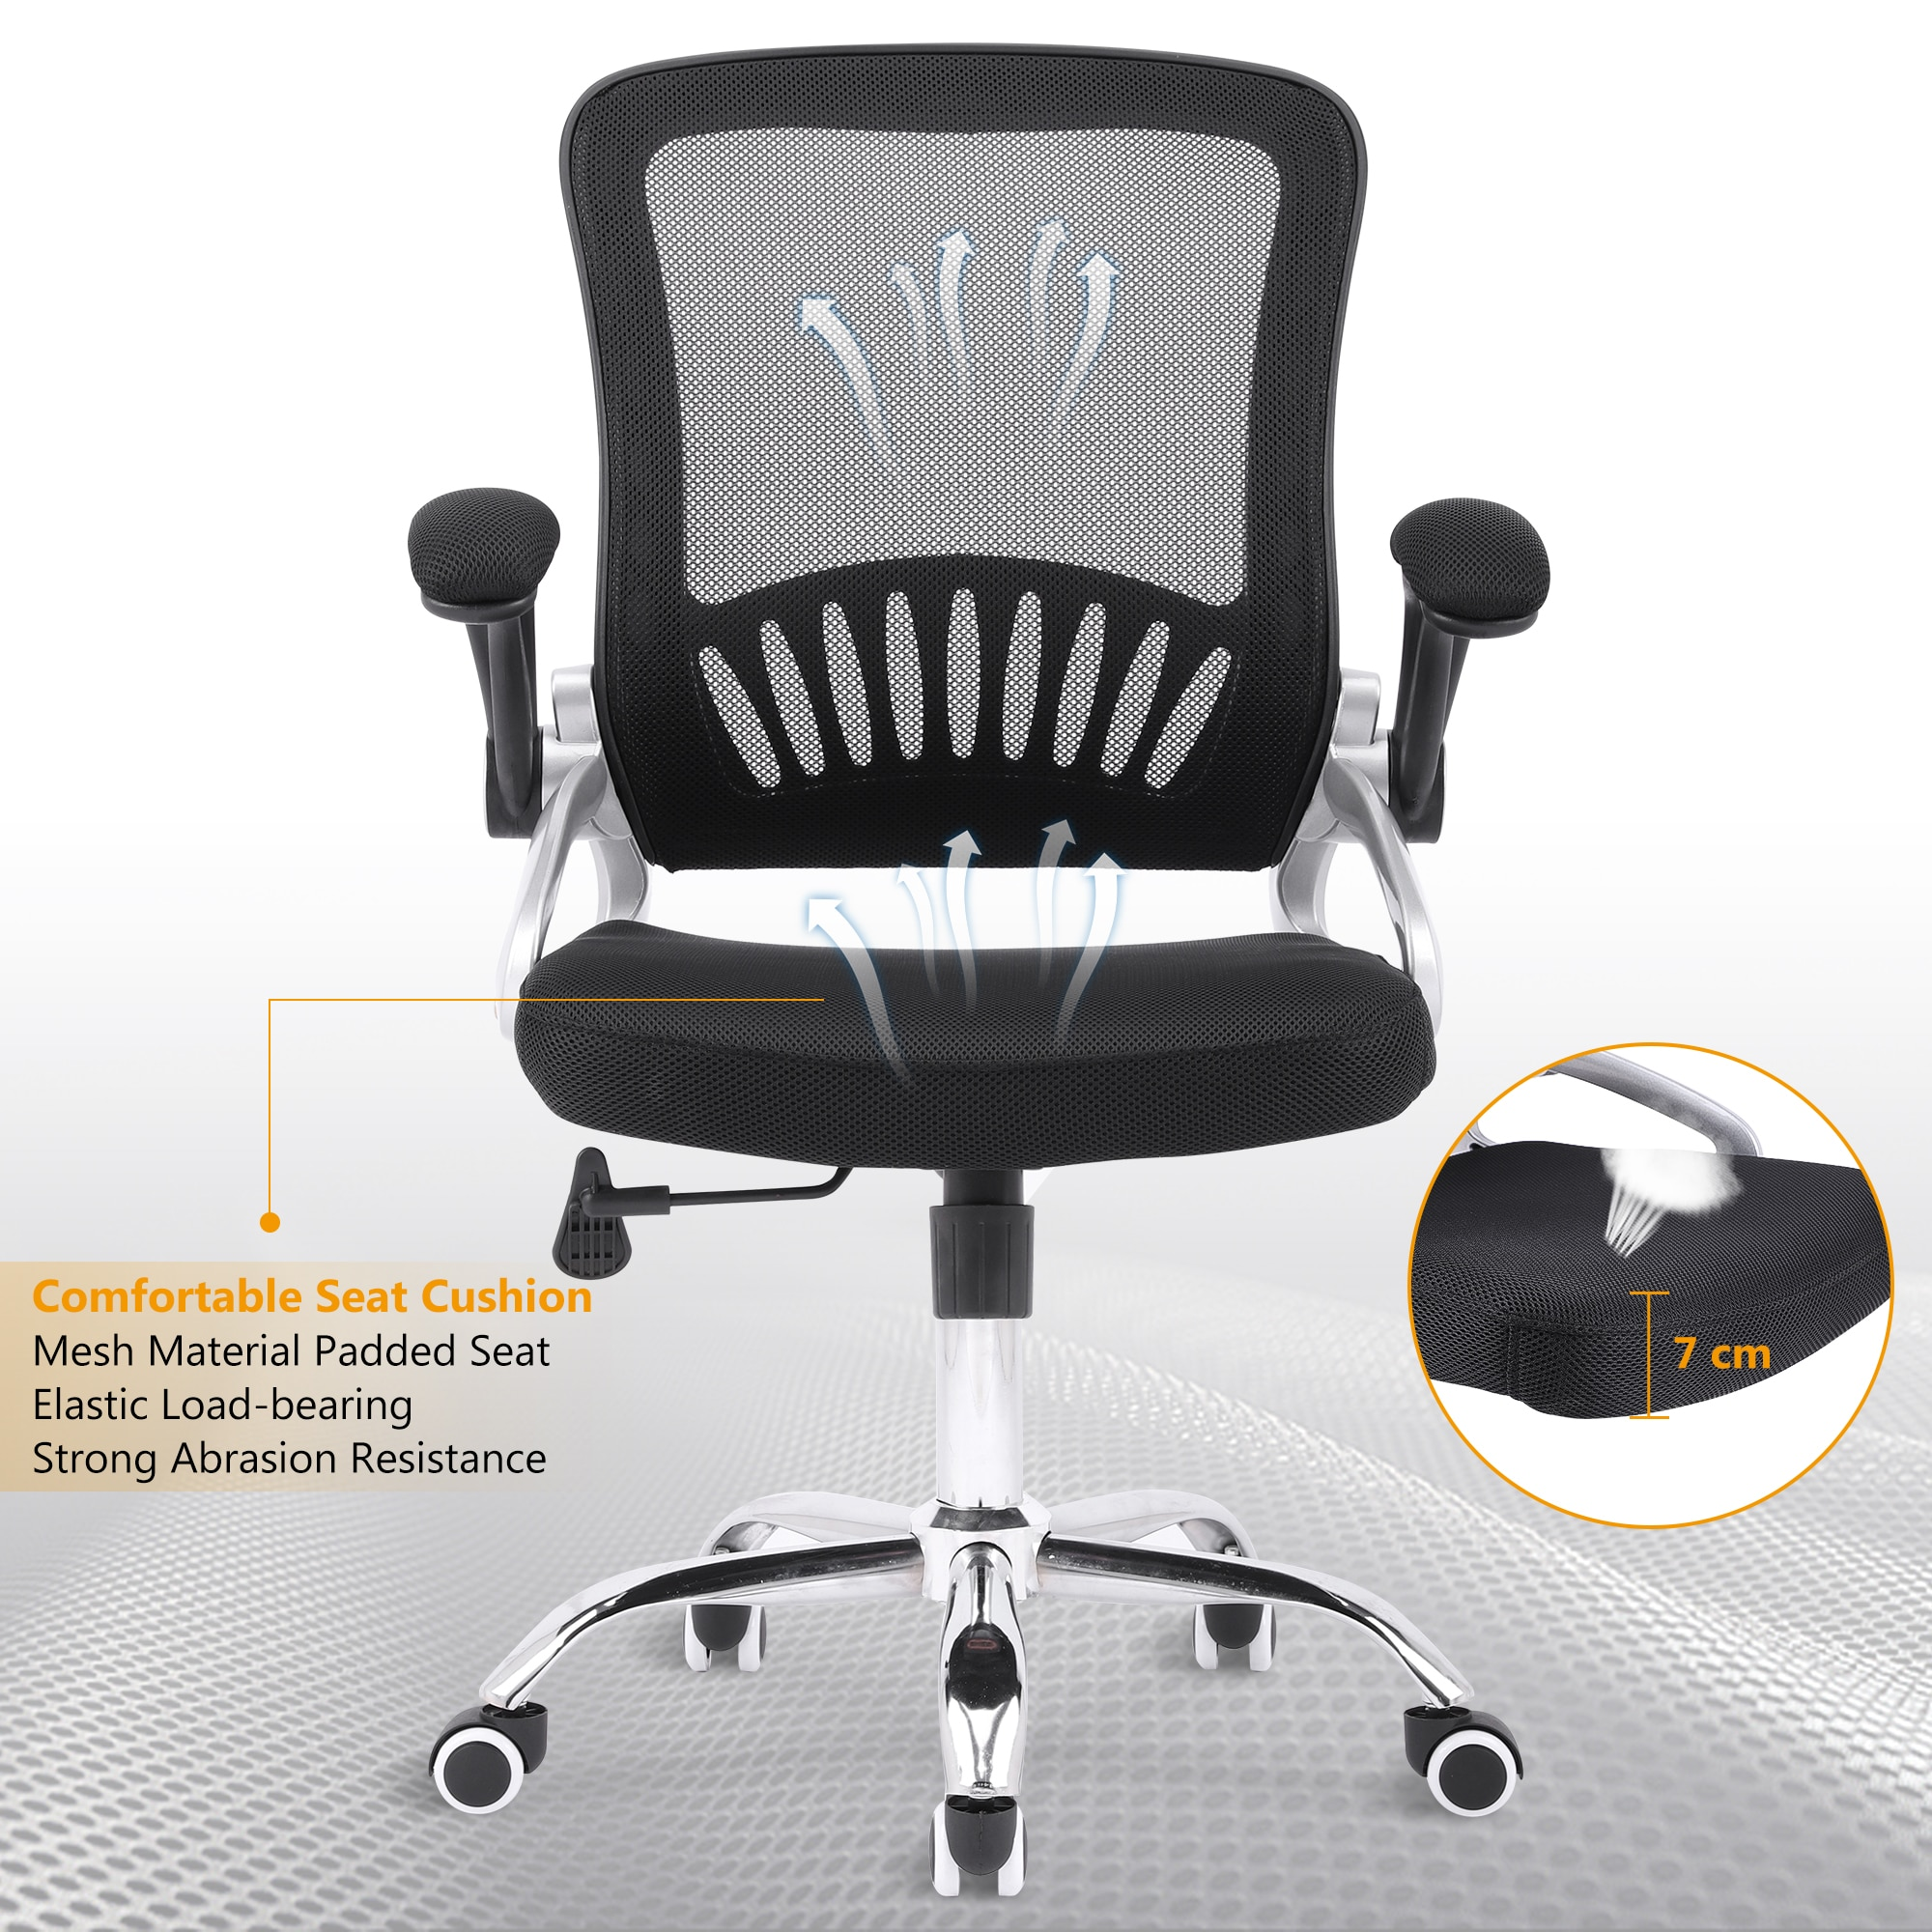 Hc1ca9165e45444e3a7b0b7cdf2d7cac68 - Sigtua Swivel Office Chair Height-adjustable Desk Chair Breathable PC Chair Comfortable Ergonomic Executive Computer Chair Black